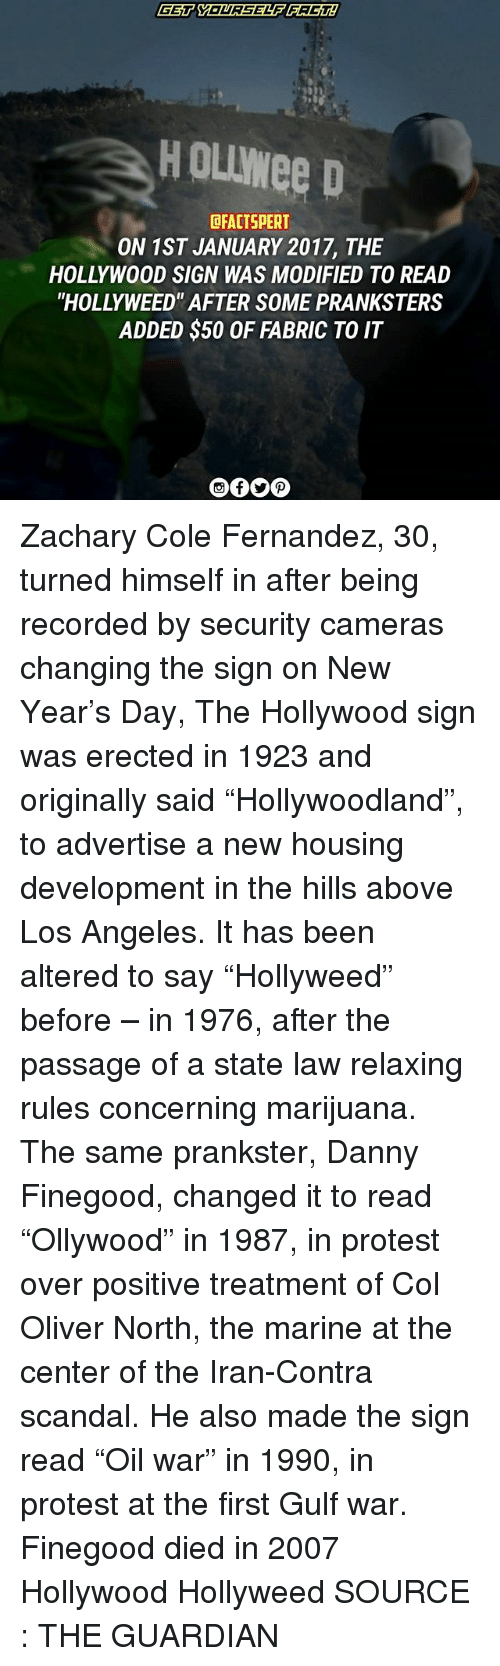 """Memes, New Year's, and Protest: HOUwee D  DFACTSPERT  ON 1ST JANUARY 2017, THE  HOLLYWOOD SIGN WAS MODIFIED TO READ  """"HOLLY WEED' AFTER SOME PRANKSTERS  ADDED $50 OF FABRIC TO IT Zachary Cole Fernandez, 30, turned himself in after being recorded by security cameras changing the sign on New Year's Day, The Hollywood sign was erected in 1923 and originally said """"Hollywoodland"""", to advertise a new housing development in the hills above Los Angeles. It has been altered to say """"Hollyweed"""" before – in 1976, after the passage of a state law relaxing rules concerning marijuana. The same prankster, Danny Finegood, changed it to read """"Ollywood"""" in 1987, in protest over positive treatment of Col Oliver North, the marine at the center of the Iran-Contra scandal. He also made the sign read """"Oil war"""" in 1990, in protest at the first Gulf war. Finegood died in 2007 Hollywood Hollyweed SOURCE : THE GUARDIAN"""